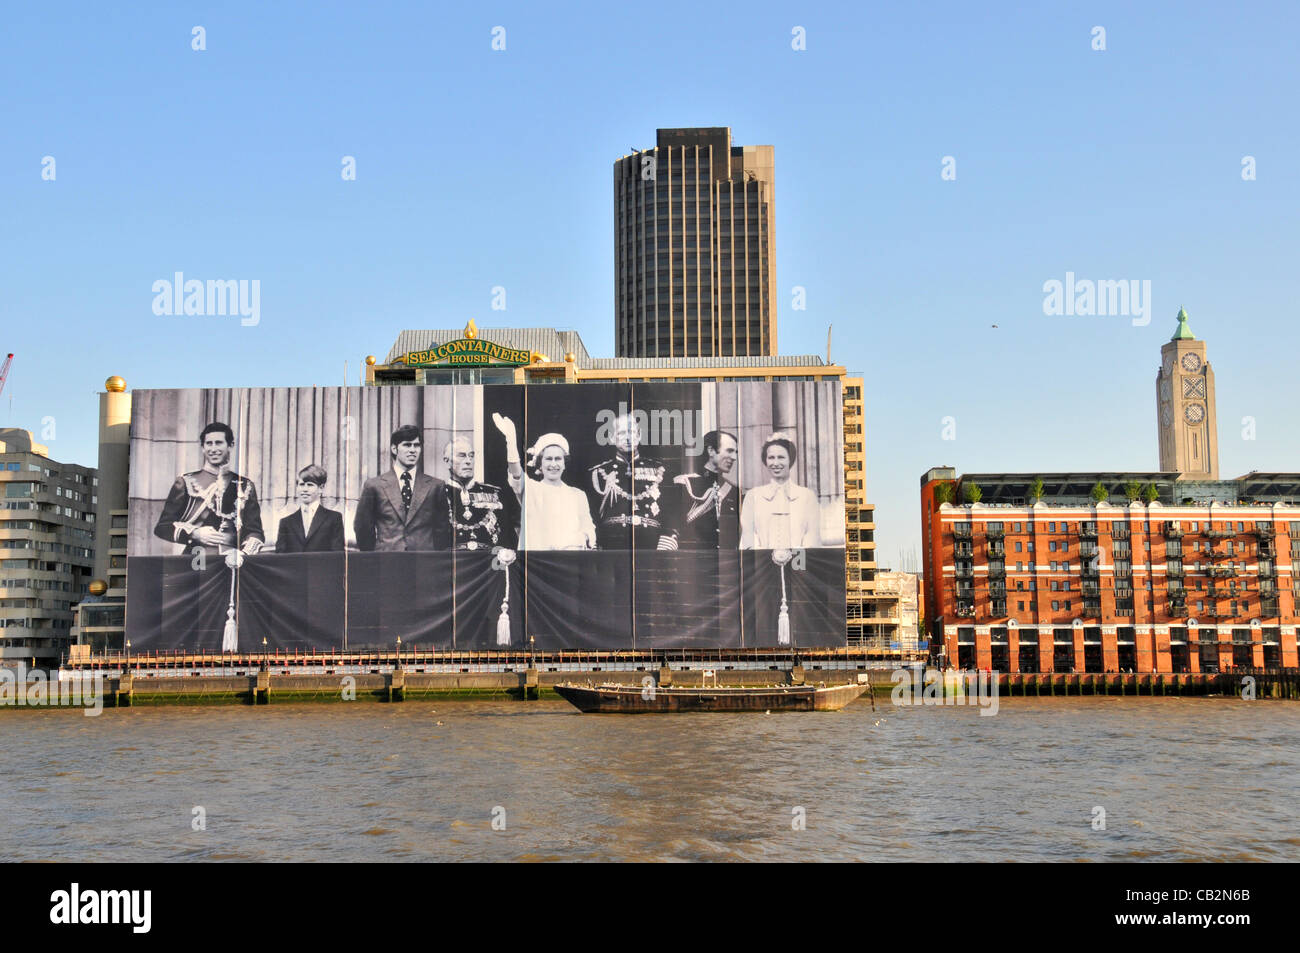 London, UK. 25 May, 2012. The largest picture of the Royal Family on the front of Sea Containers House on the Southbank, - Stock Image